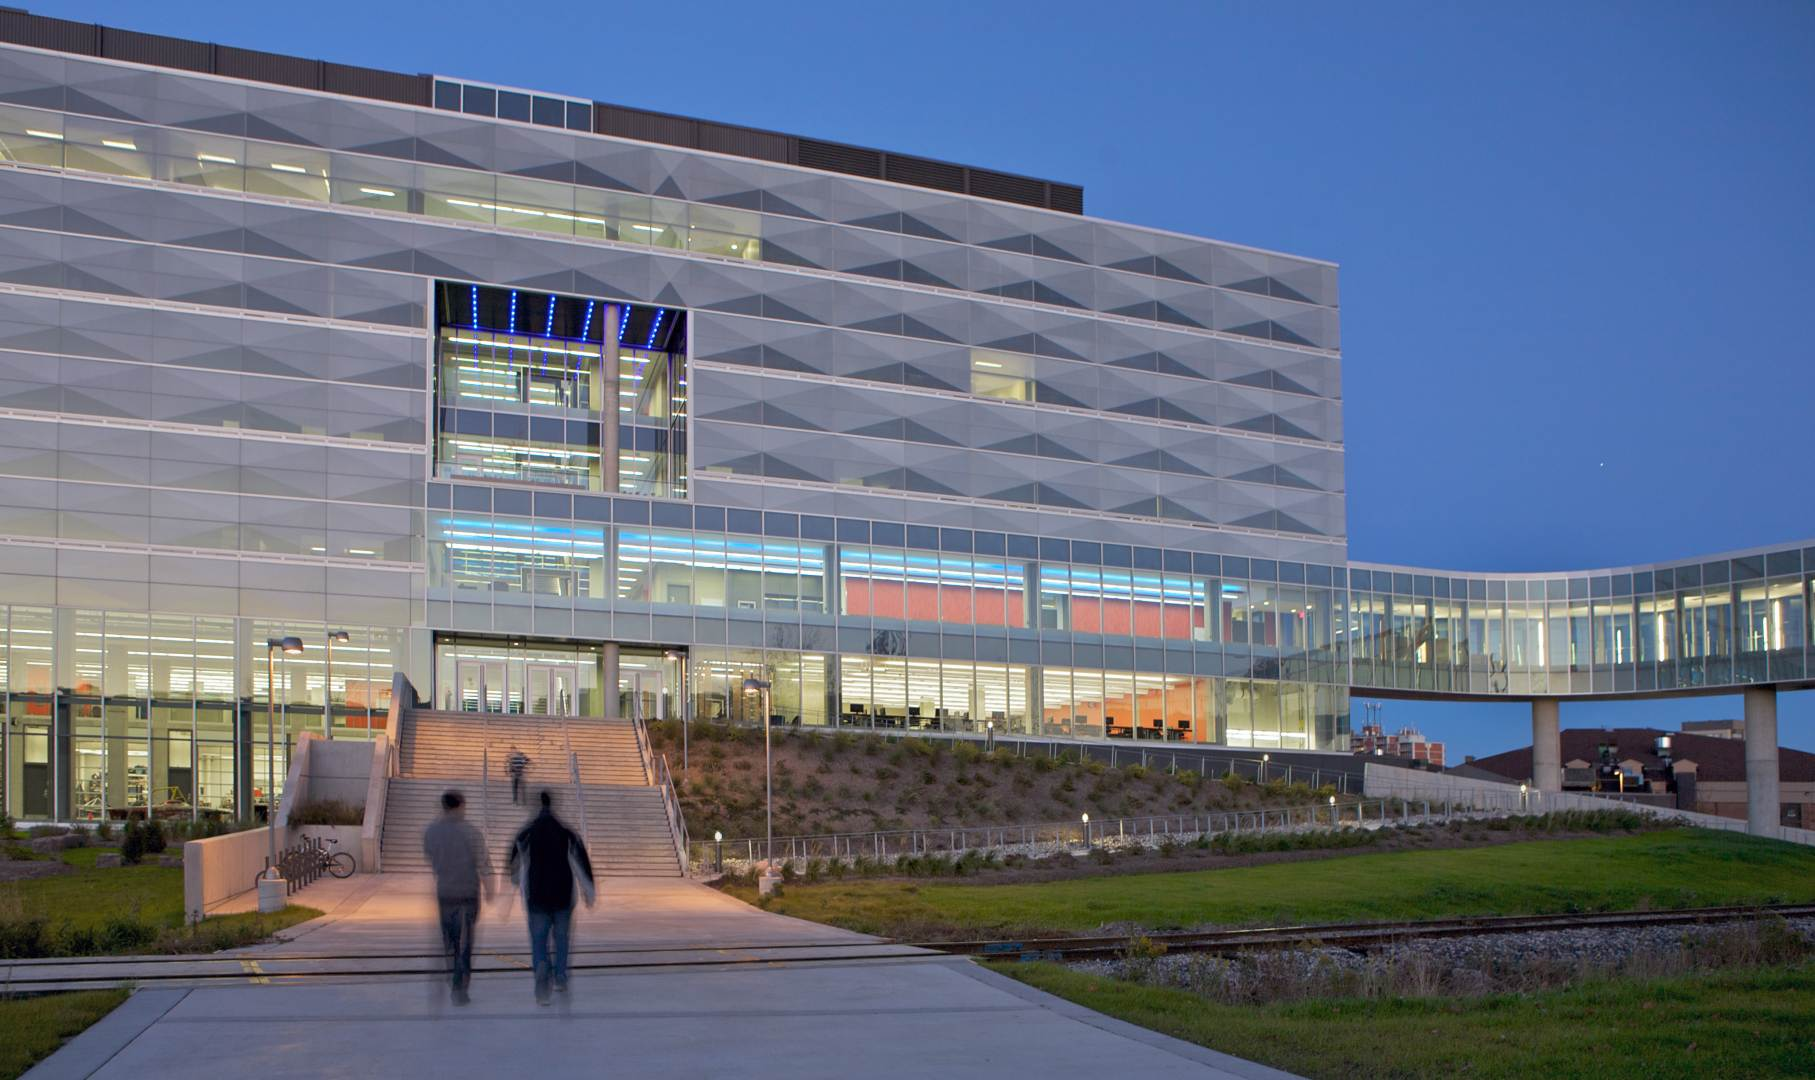 University of Waterloo Engineering V Building